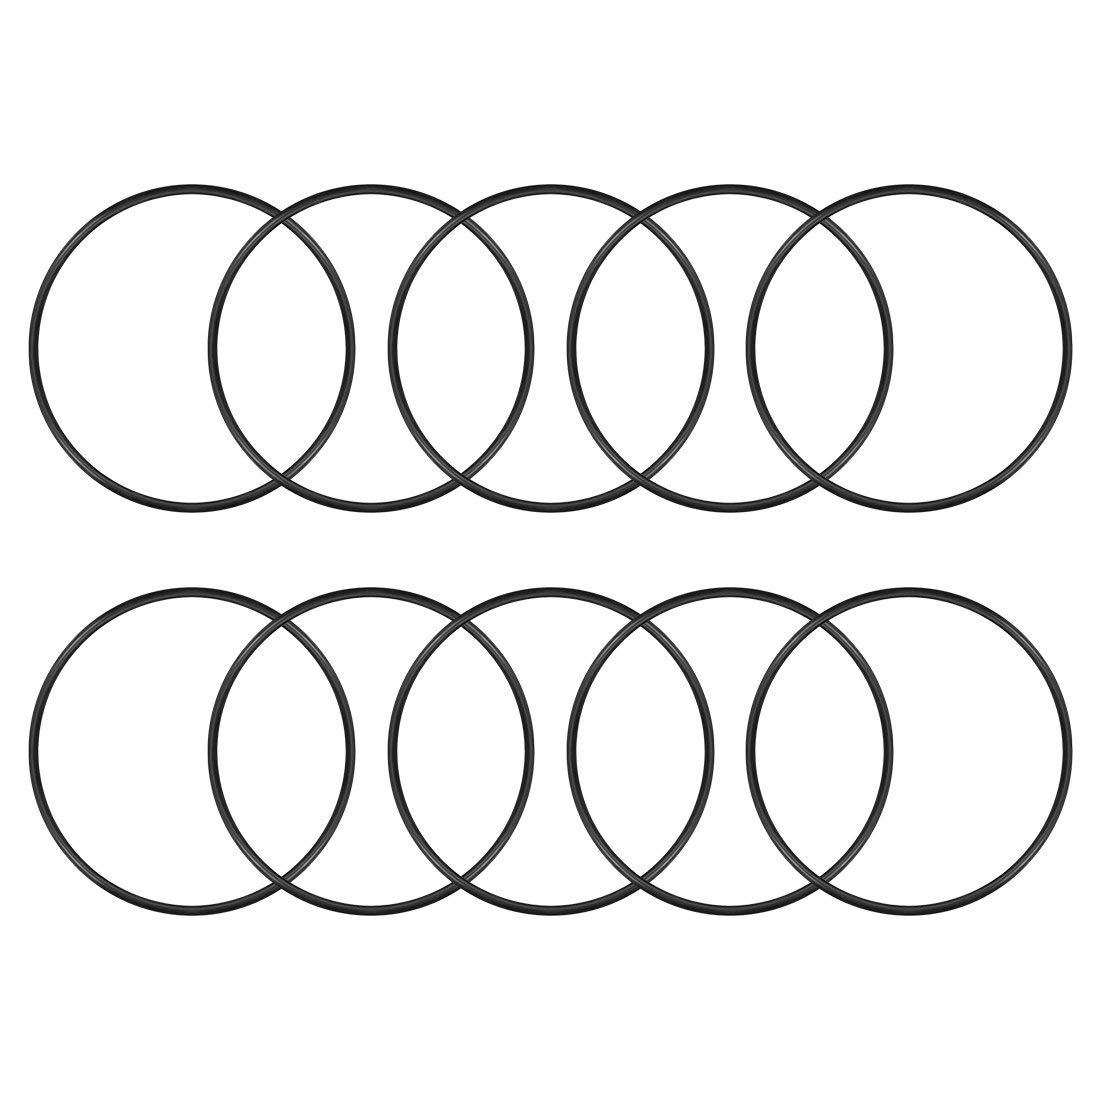 Pack of 12 1.06 ID 4 Length Sterling Seal SSI9000IR1304GR150X12 304 SS Spiral Wound Gasket with 304SS Inner Ring and Flexible Graphite Filler for 1 Pipe 1.25 OD Pressure Class 150#